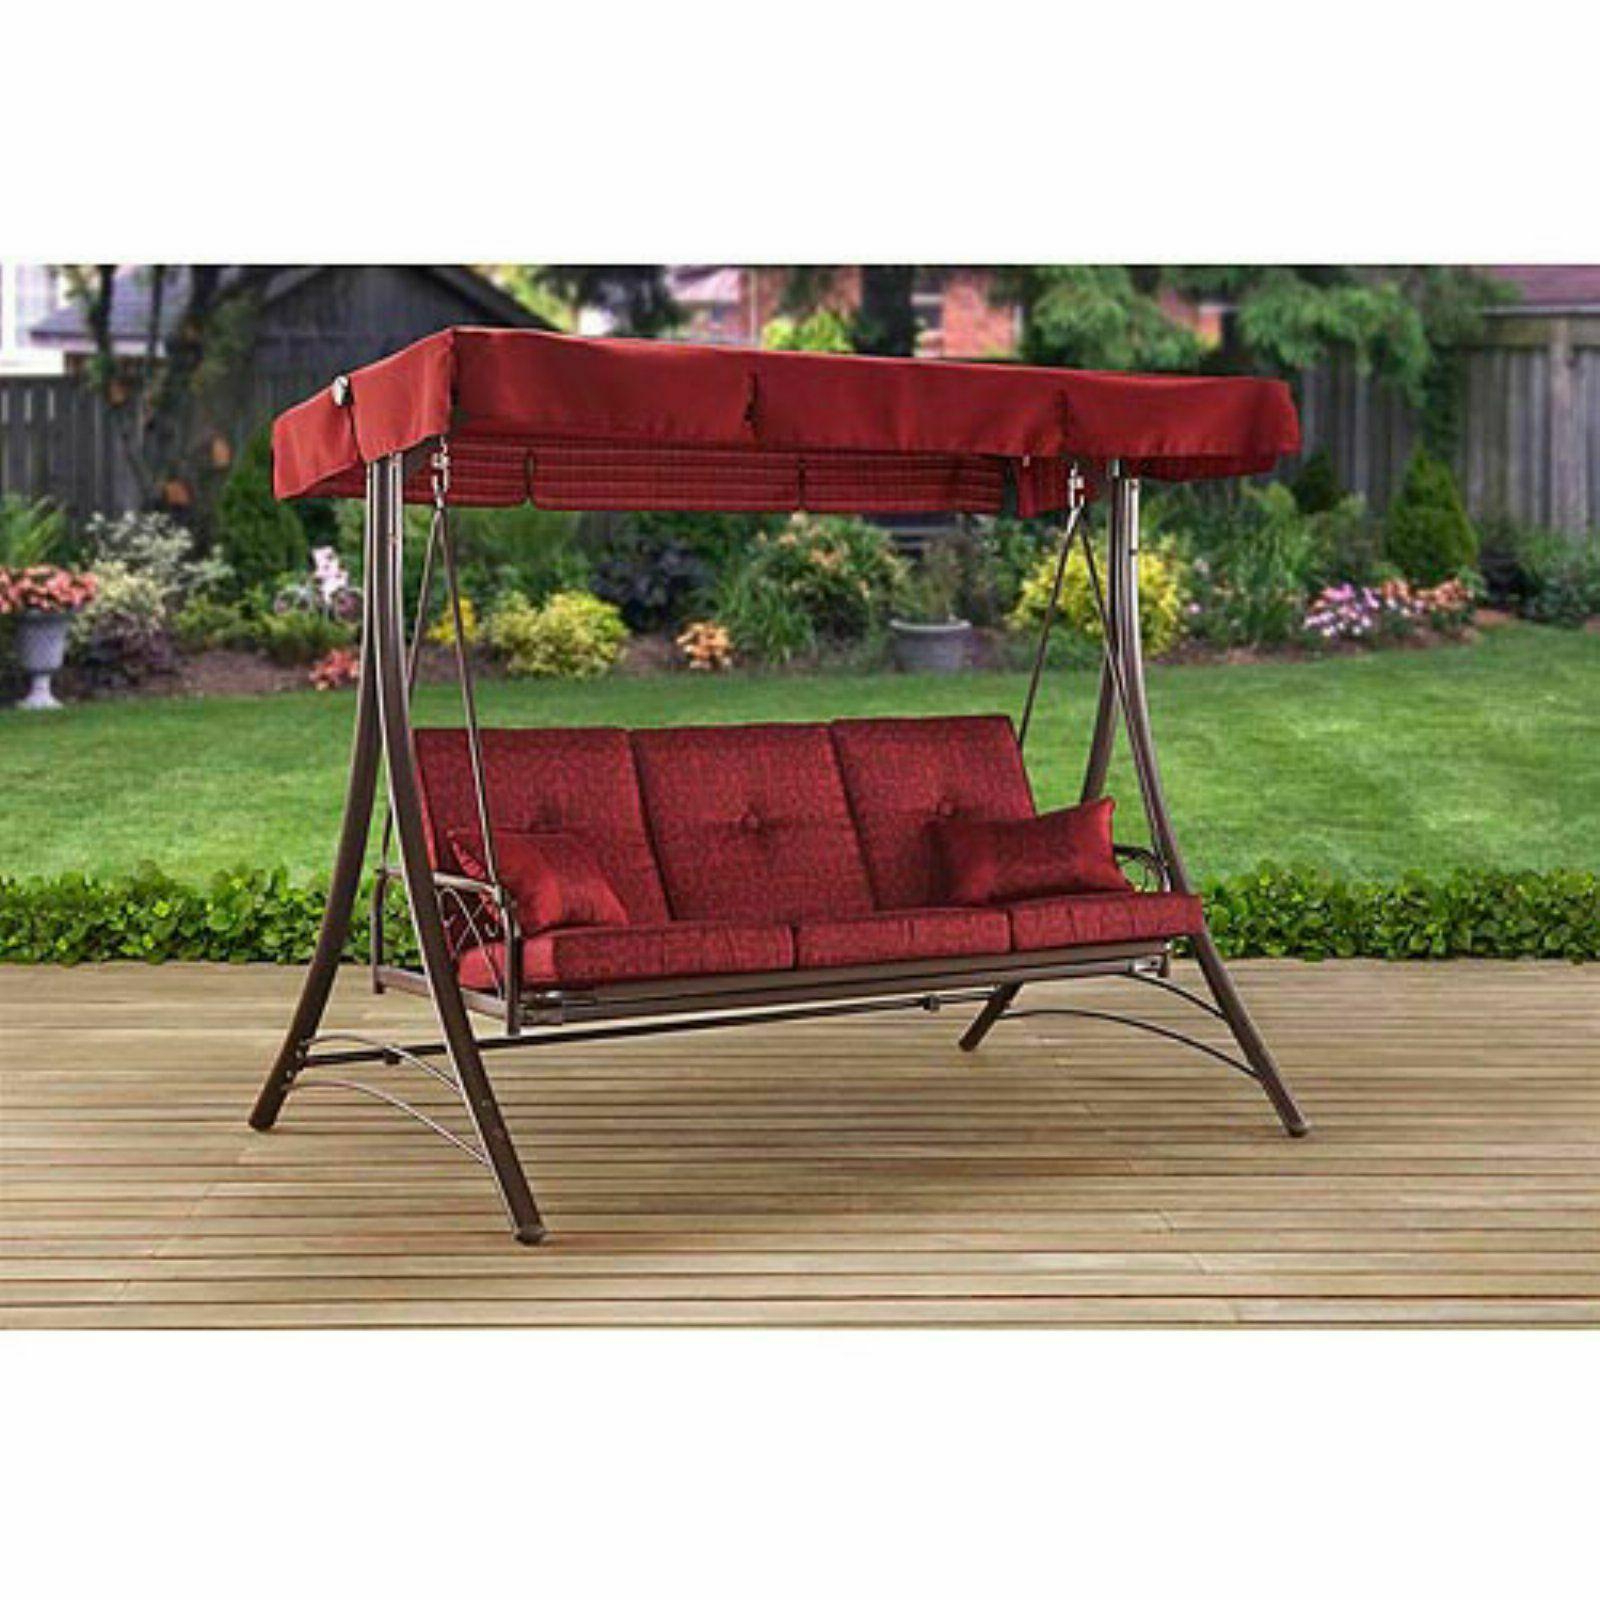 Widely Used 3 Person Red With Brown Powder Coated Frame Steel Outdoor Swings With Front Porch Swing Set Outdoor Patio Swin (Gallery 13 of 25)